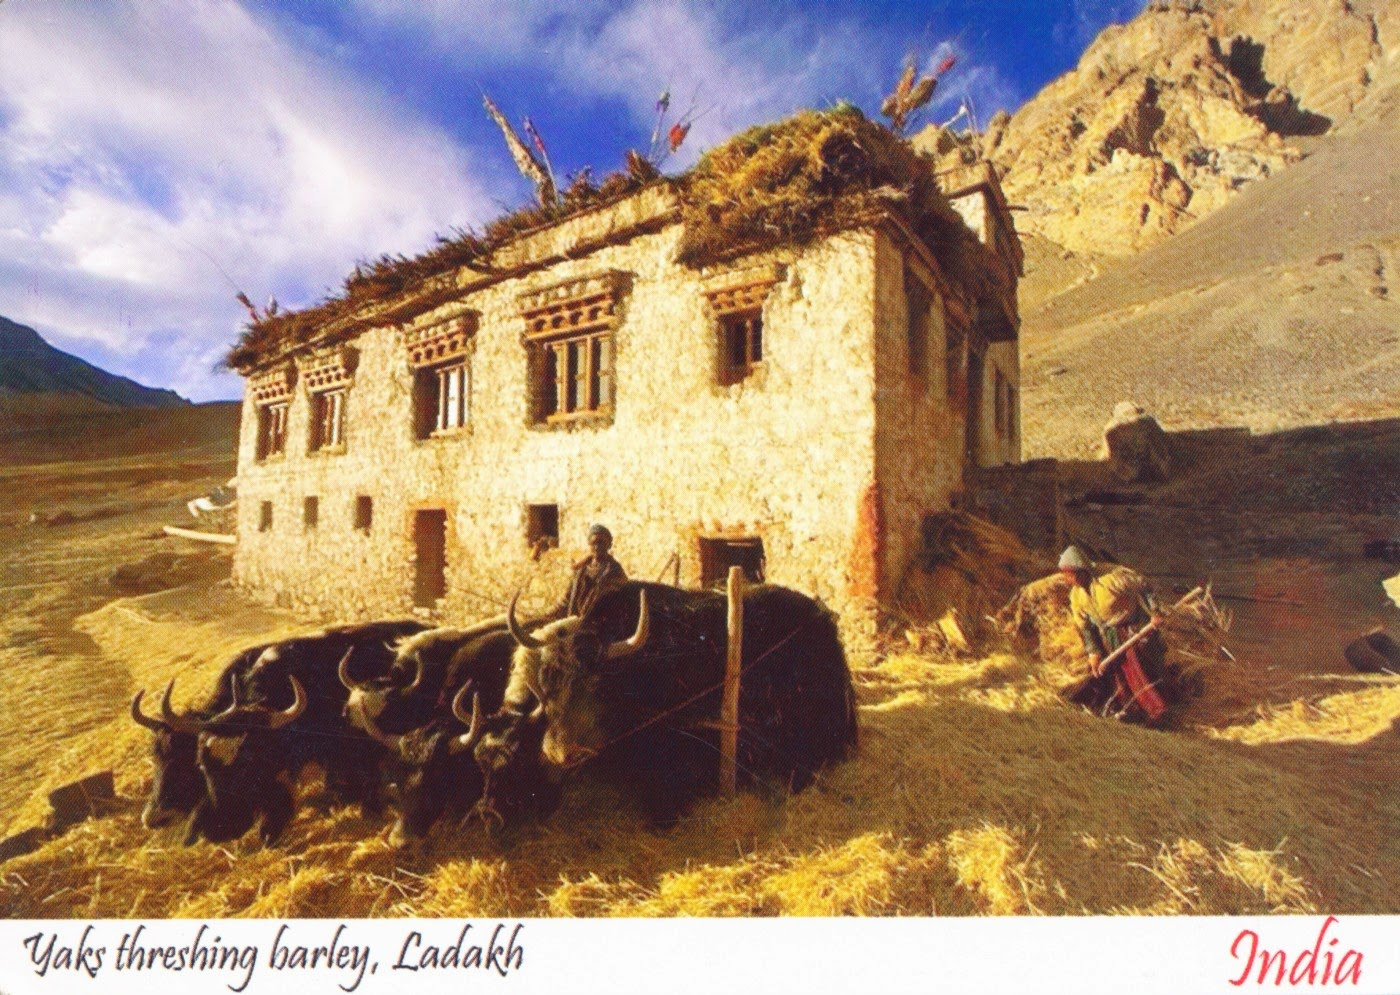 postcard, india, yaks, barley